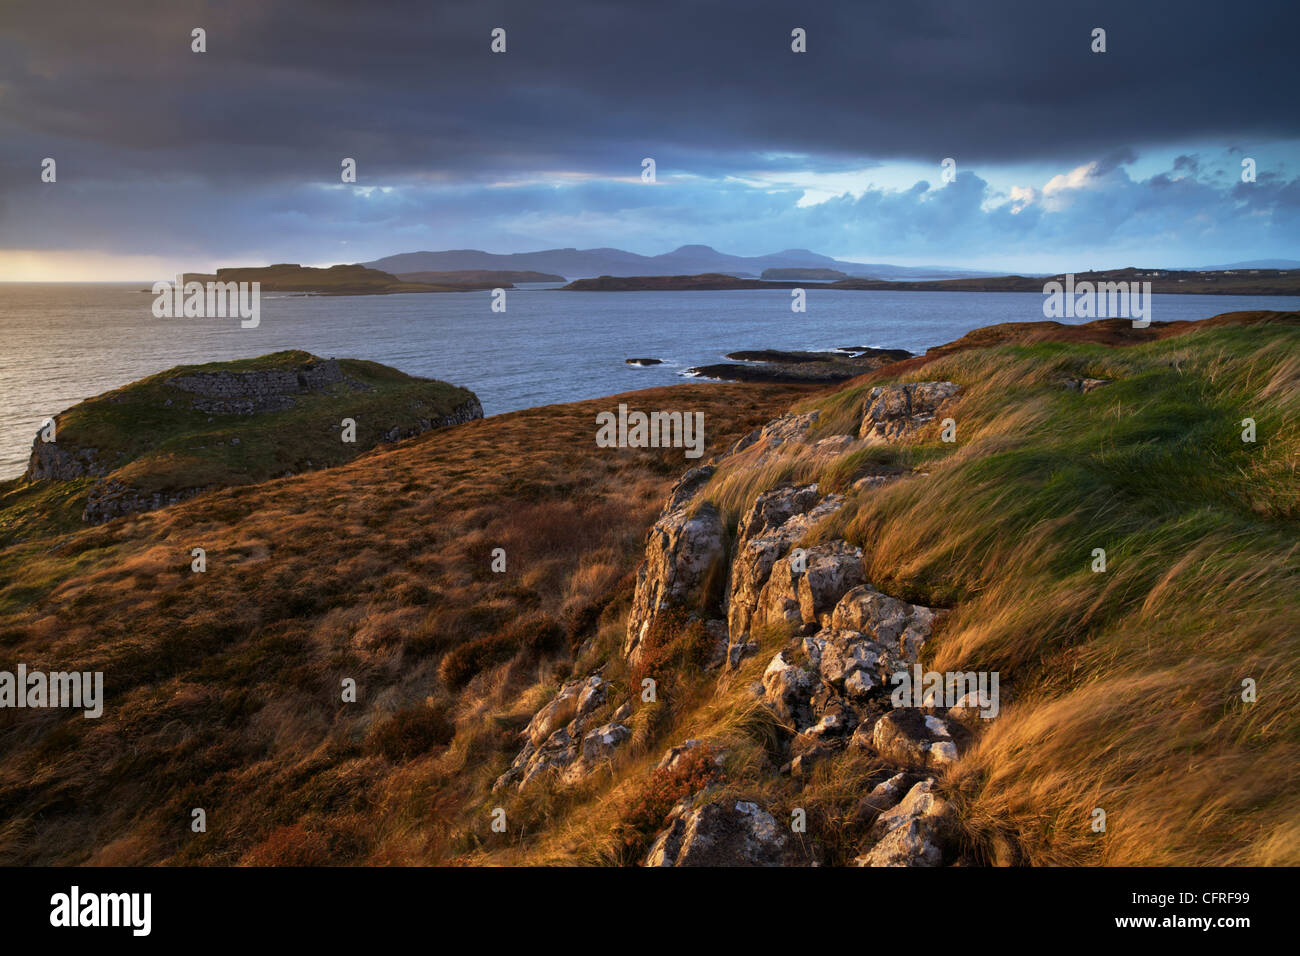 A view from Ardtreck Point across Loch Bracadale towards MacLeod's Tables, Isle of Skye, Scotland, United Kingdom, Europe Stock Photo